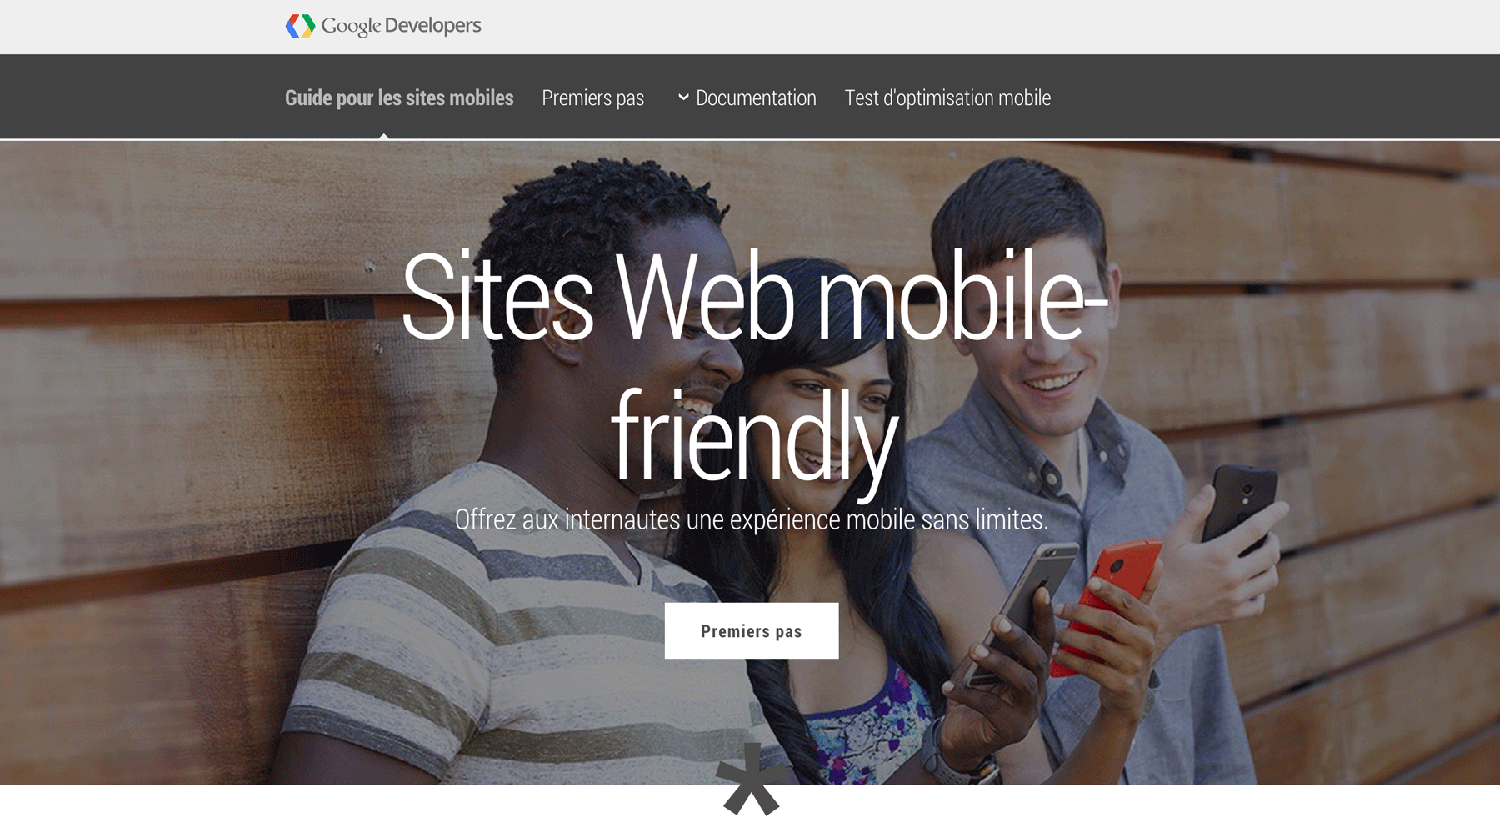 developper-son-entreprise-ecommerce-enjeux-tendances-2015-referencement-mobile-friendly